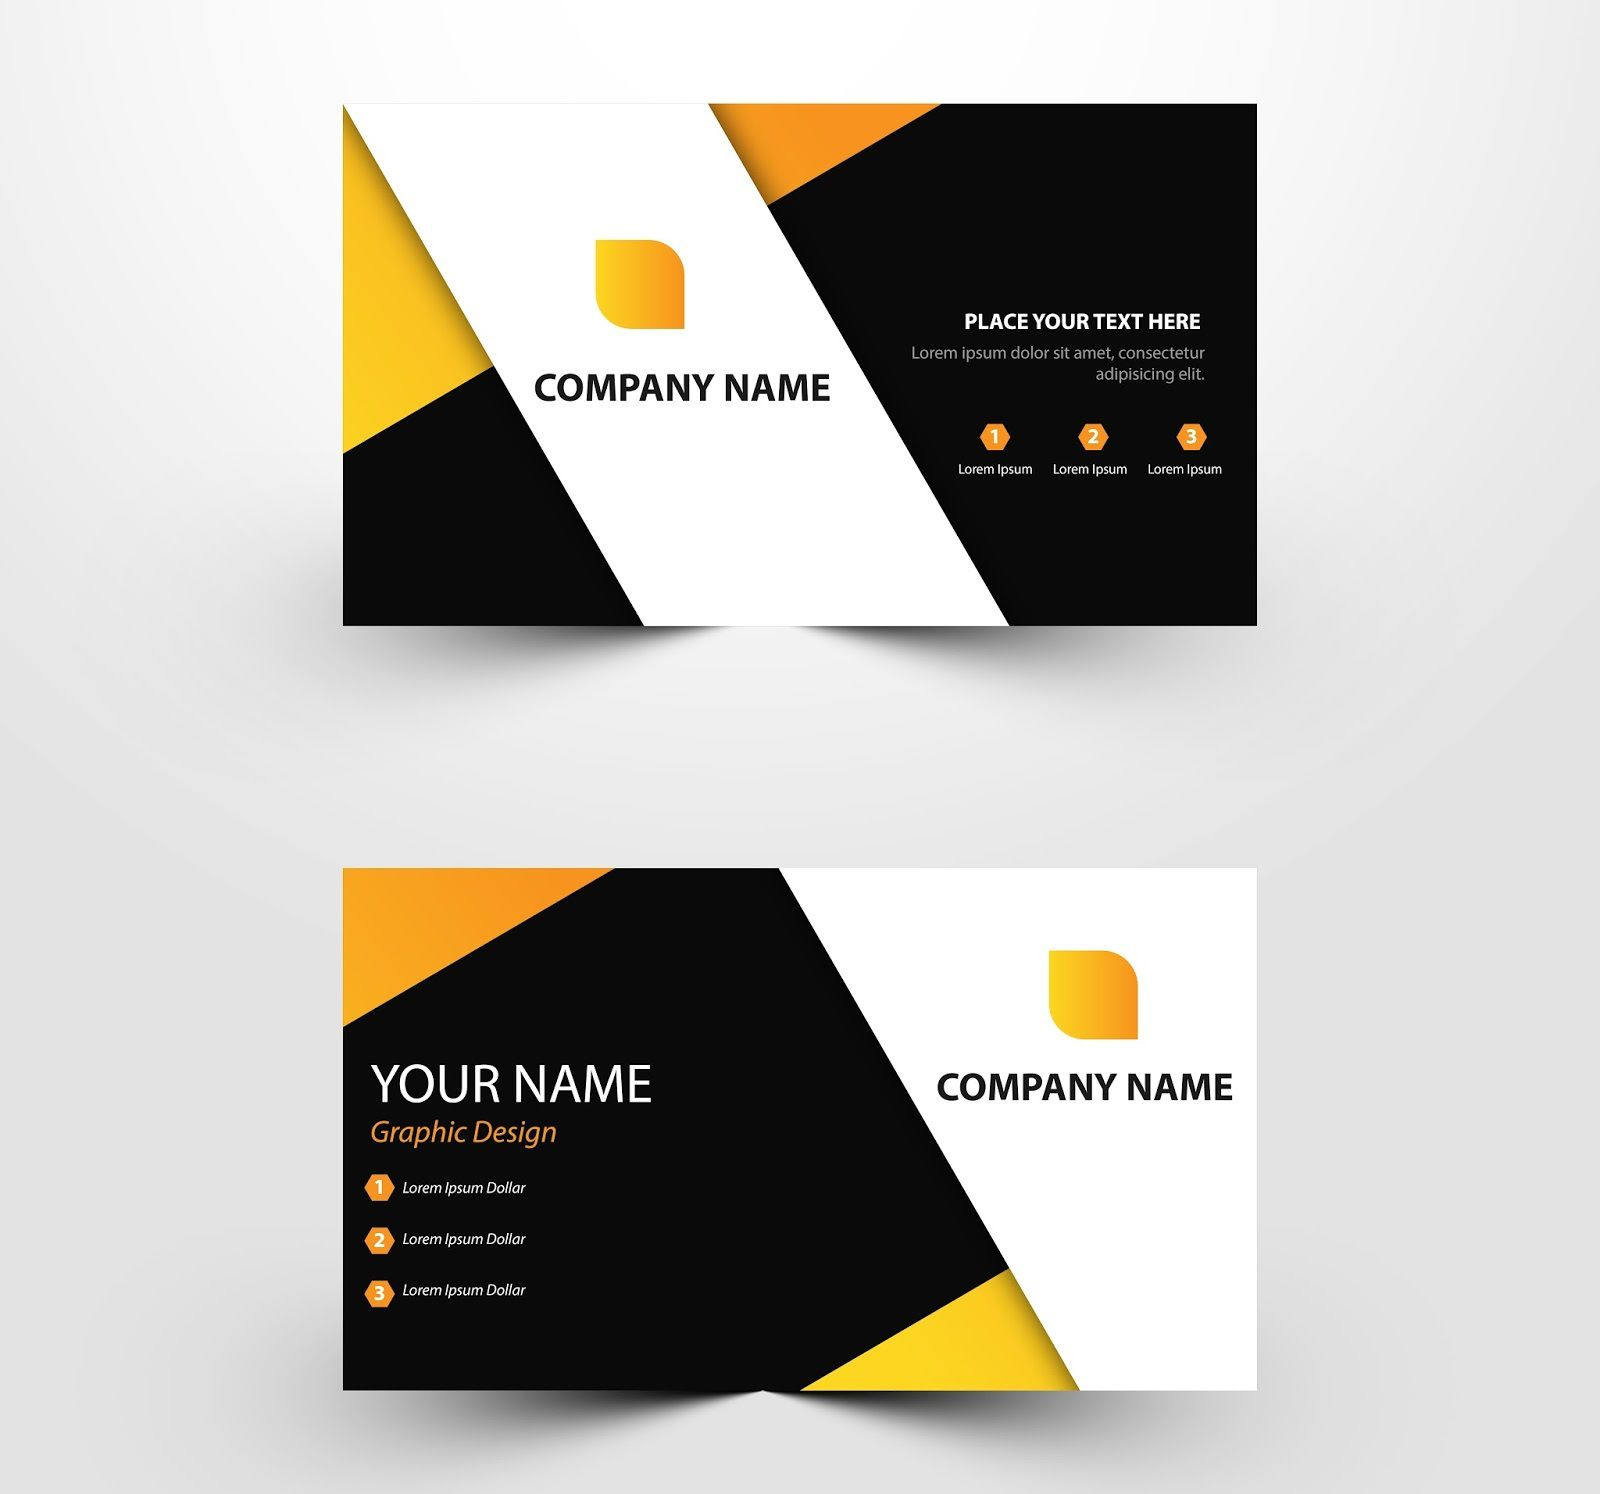 009 Awful Free Adobe Photoshop Busines Card Template Example  Templates DownloadFull